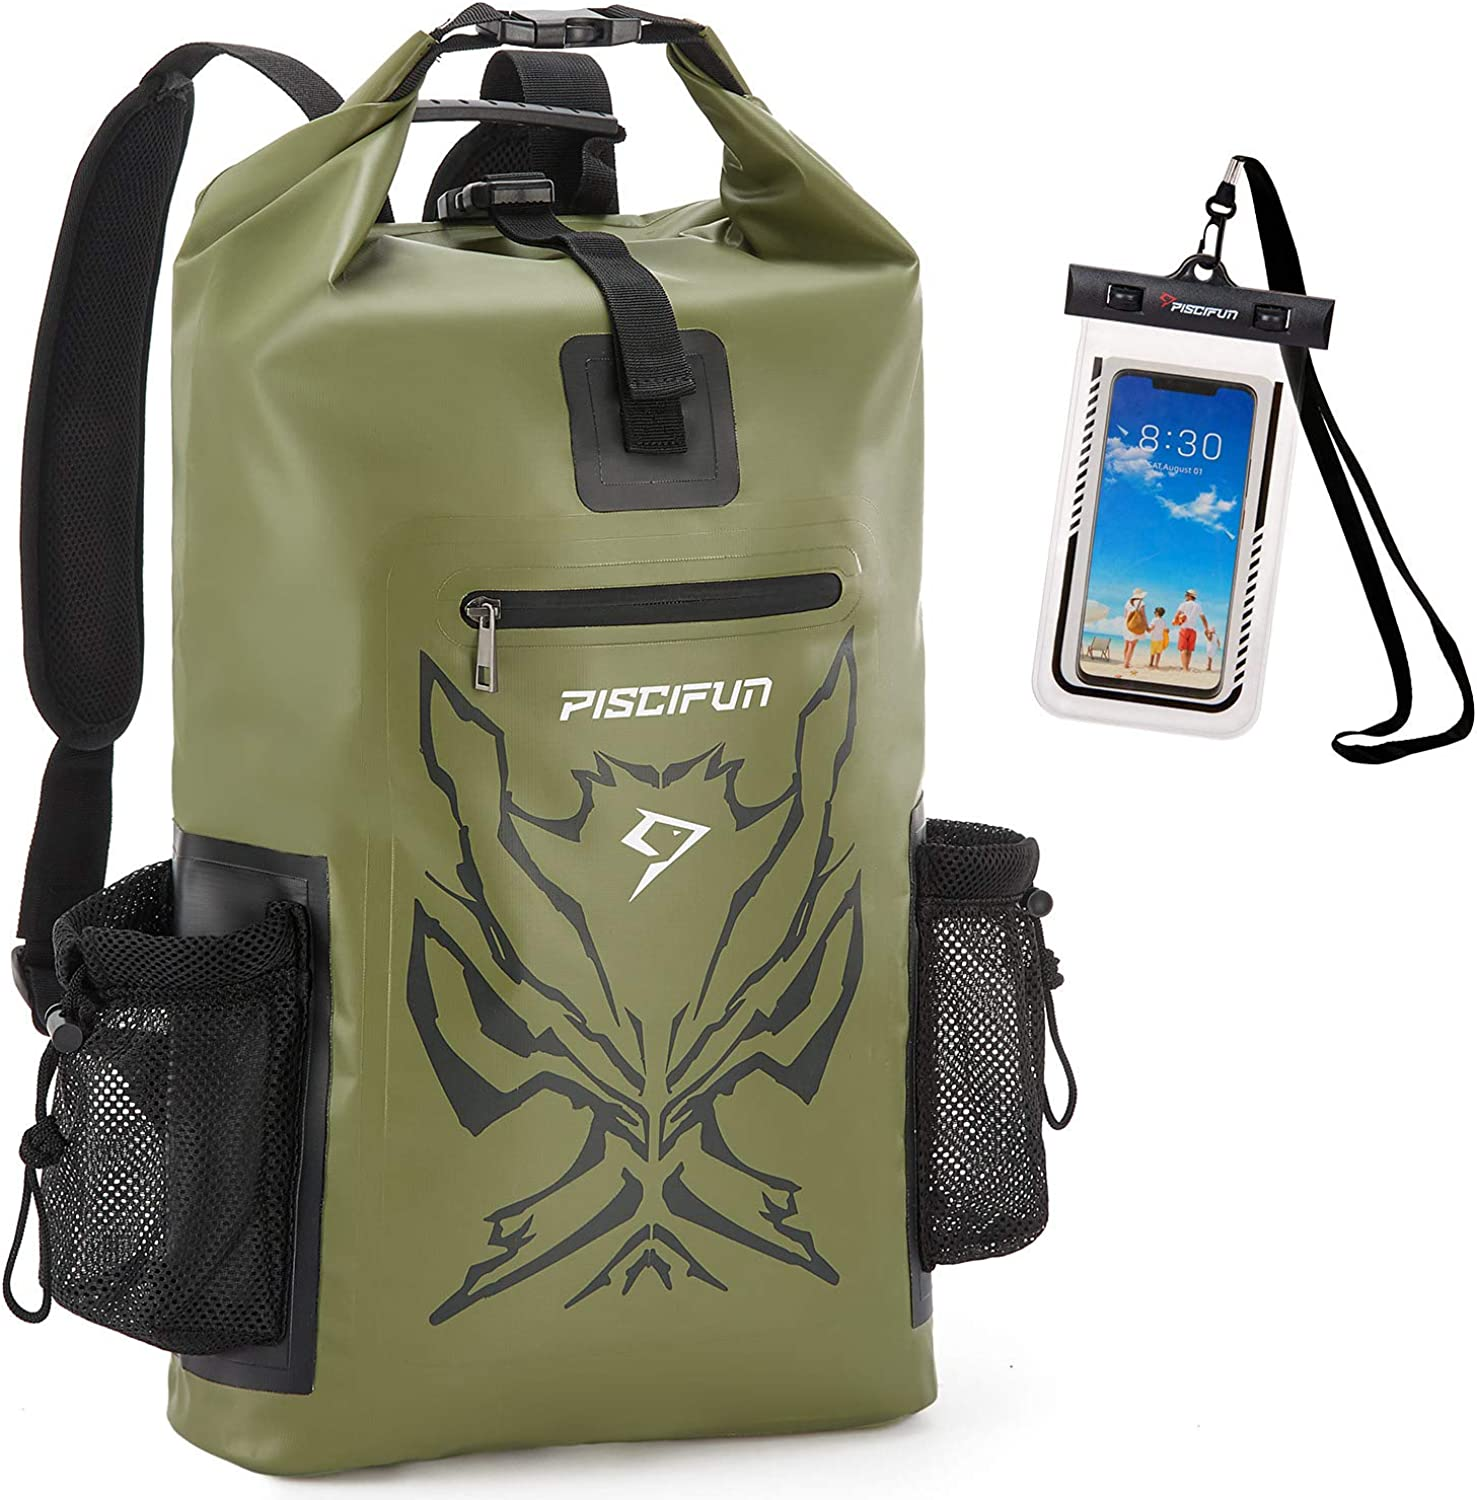 Ranking Max 42% OFF TOP20 Piscifun Angry Face Dry Bag Case Phone with Waterproof Waterpro